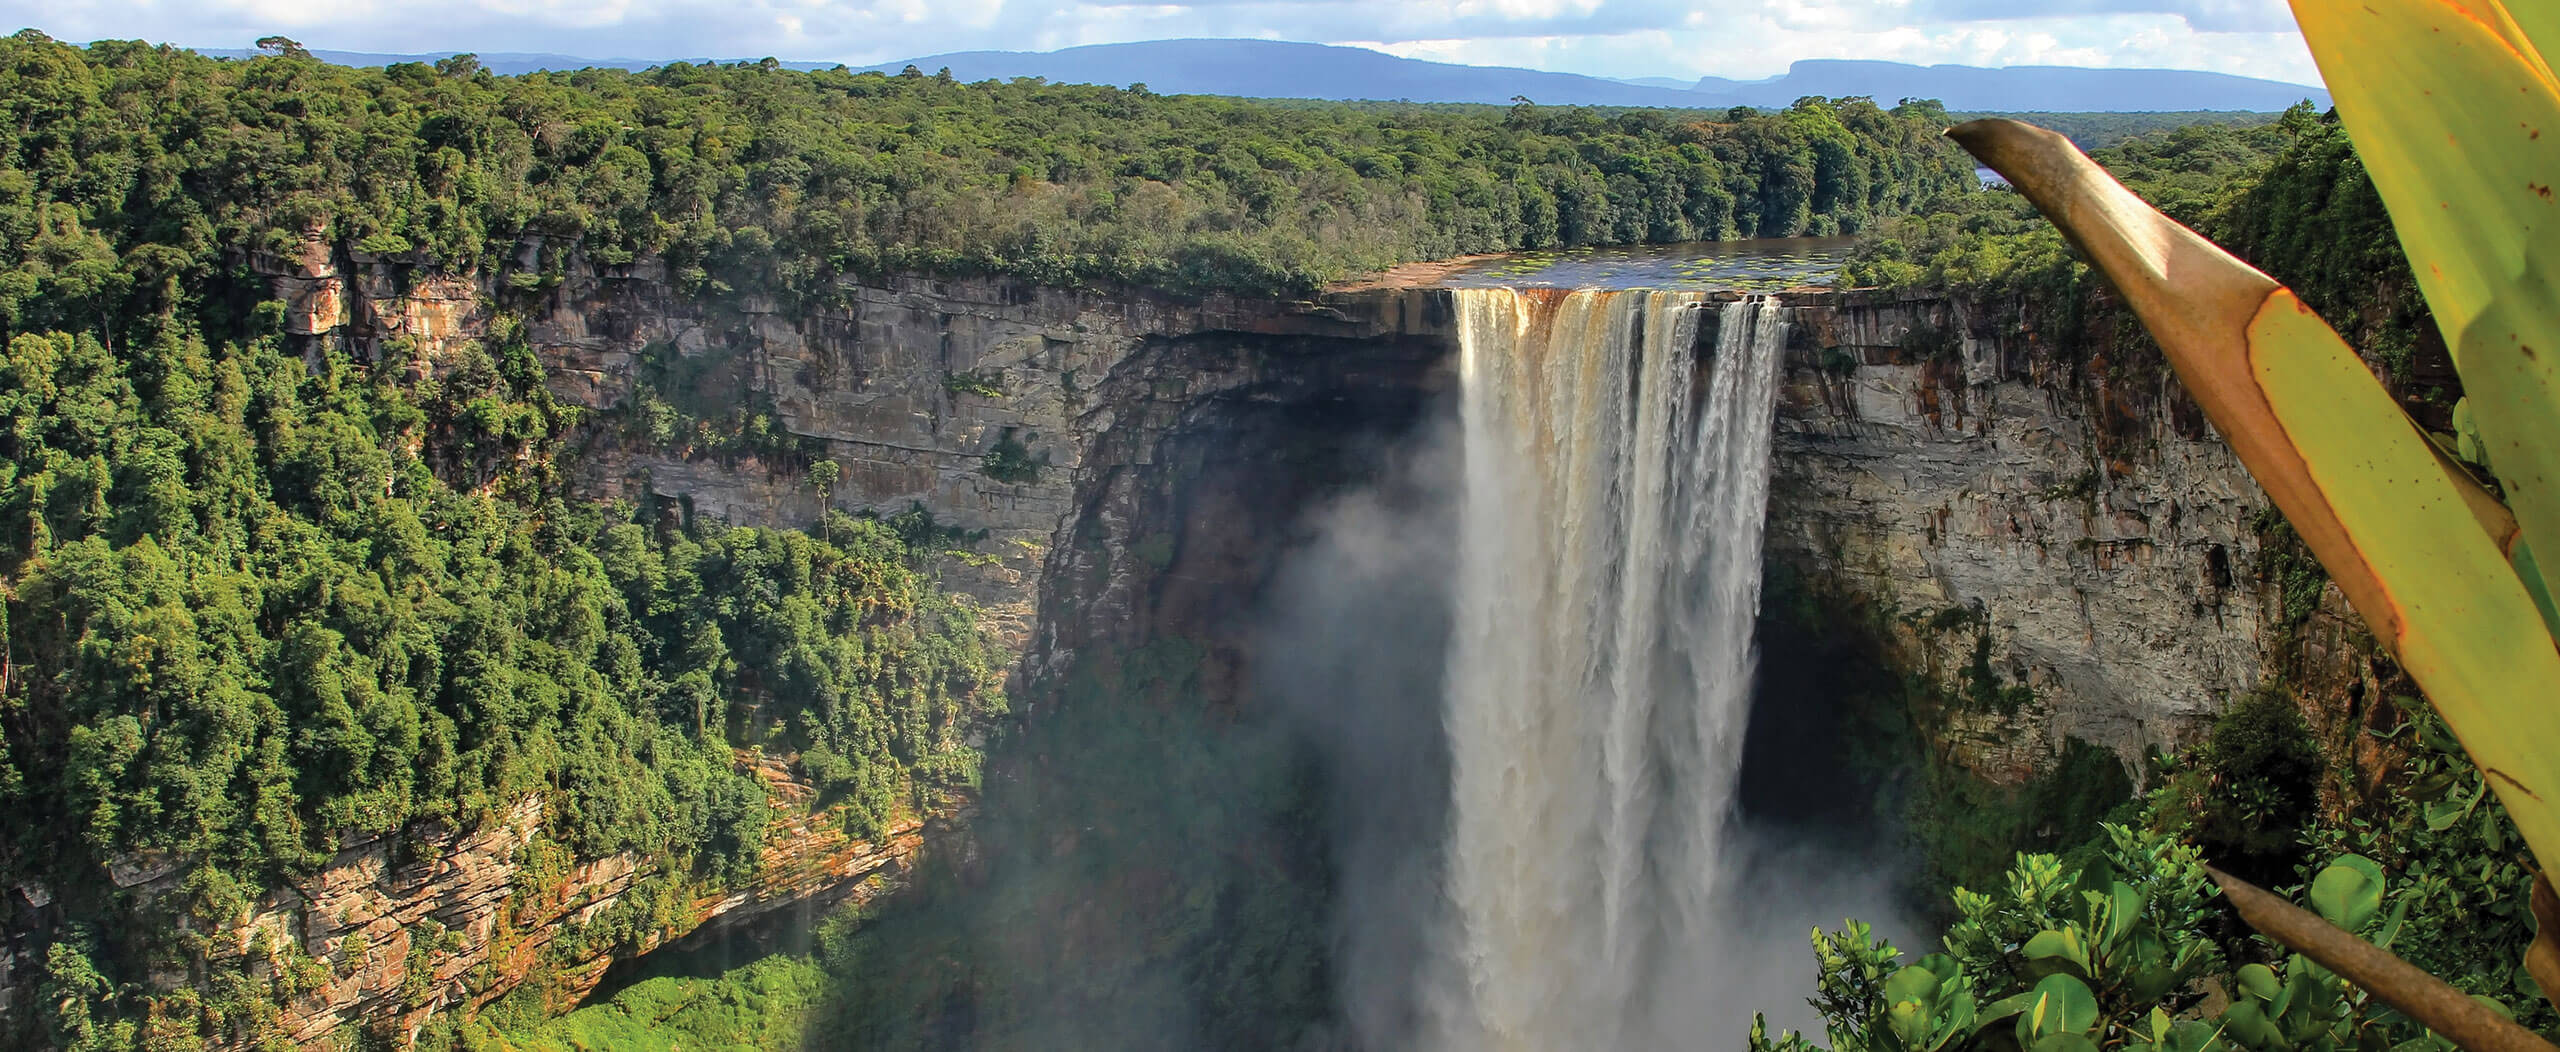 Kaieteur Falls in Guyana as seen on our Guyana Tours